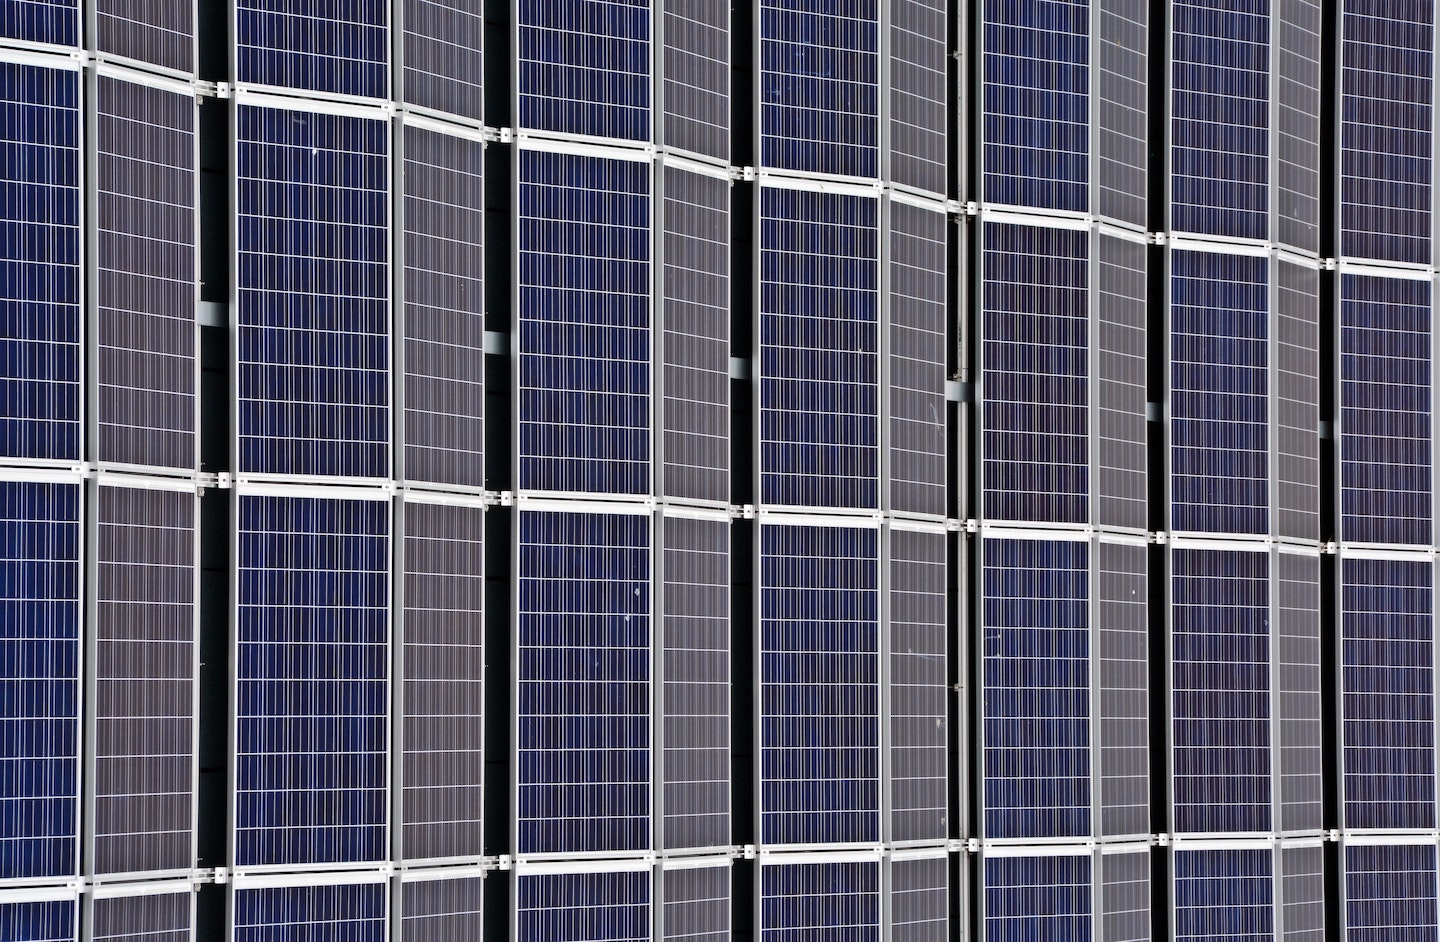 A wall of solar panels